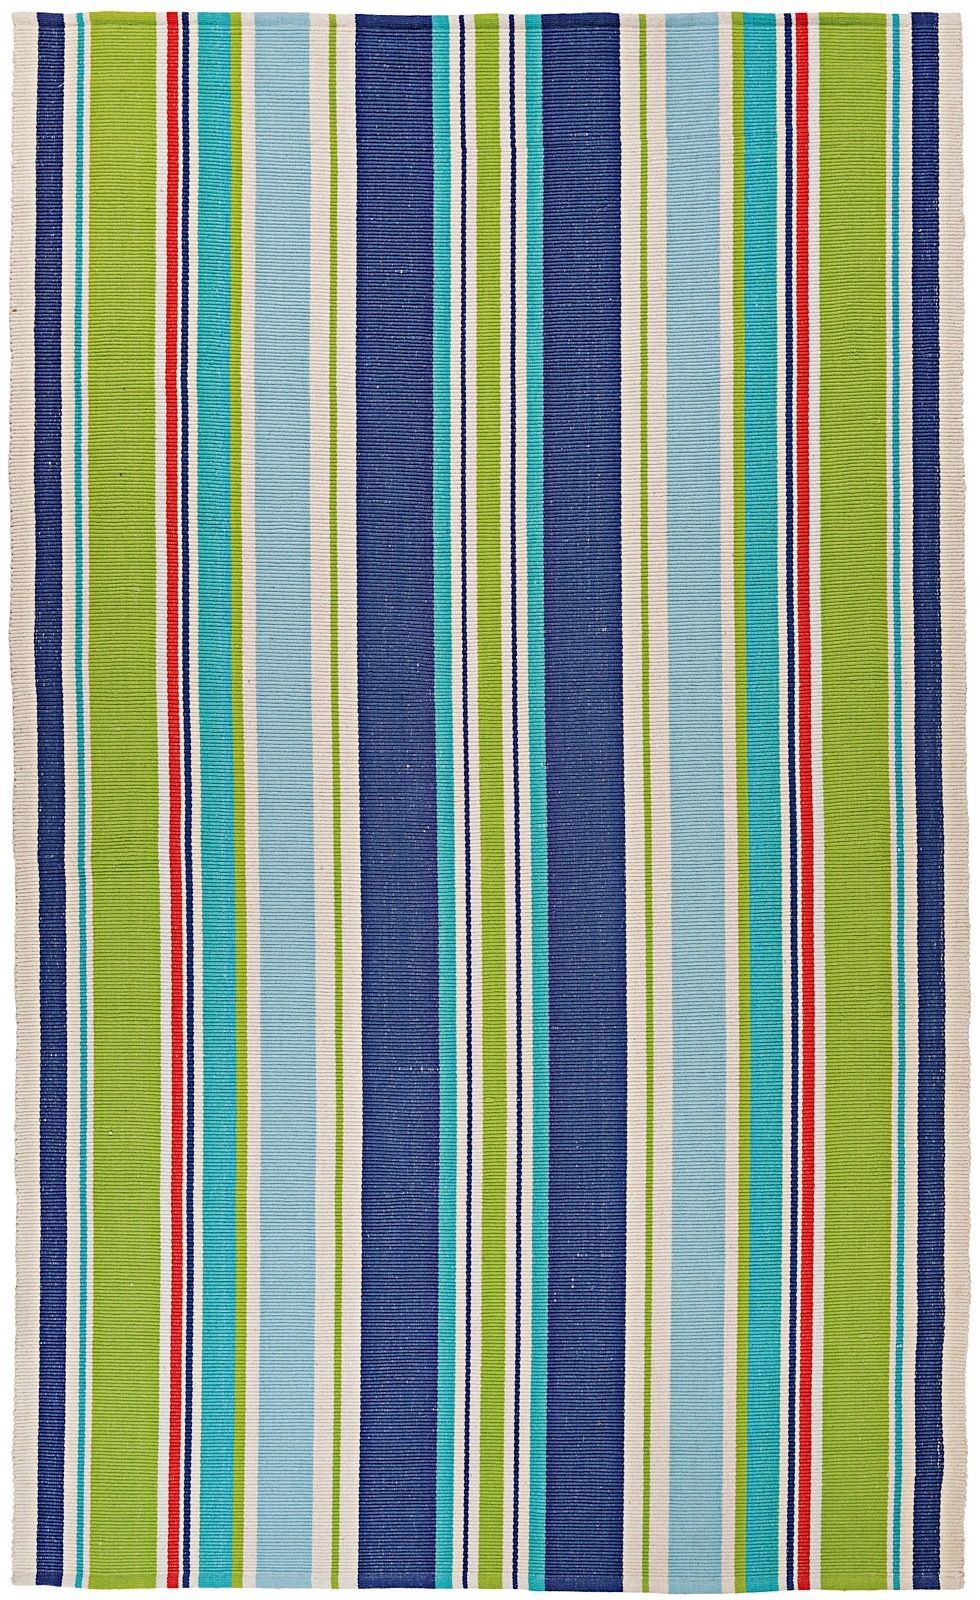 couristan bar harbor solid/striped area rug collection